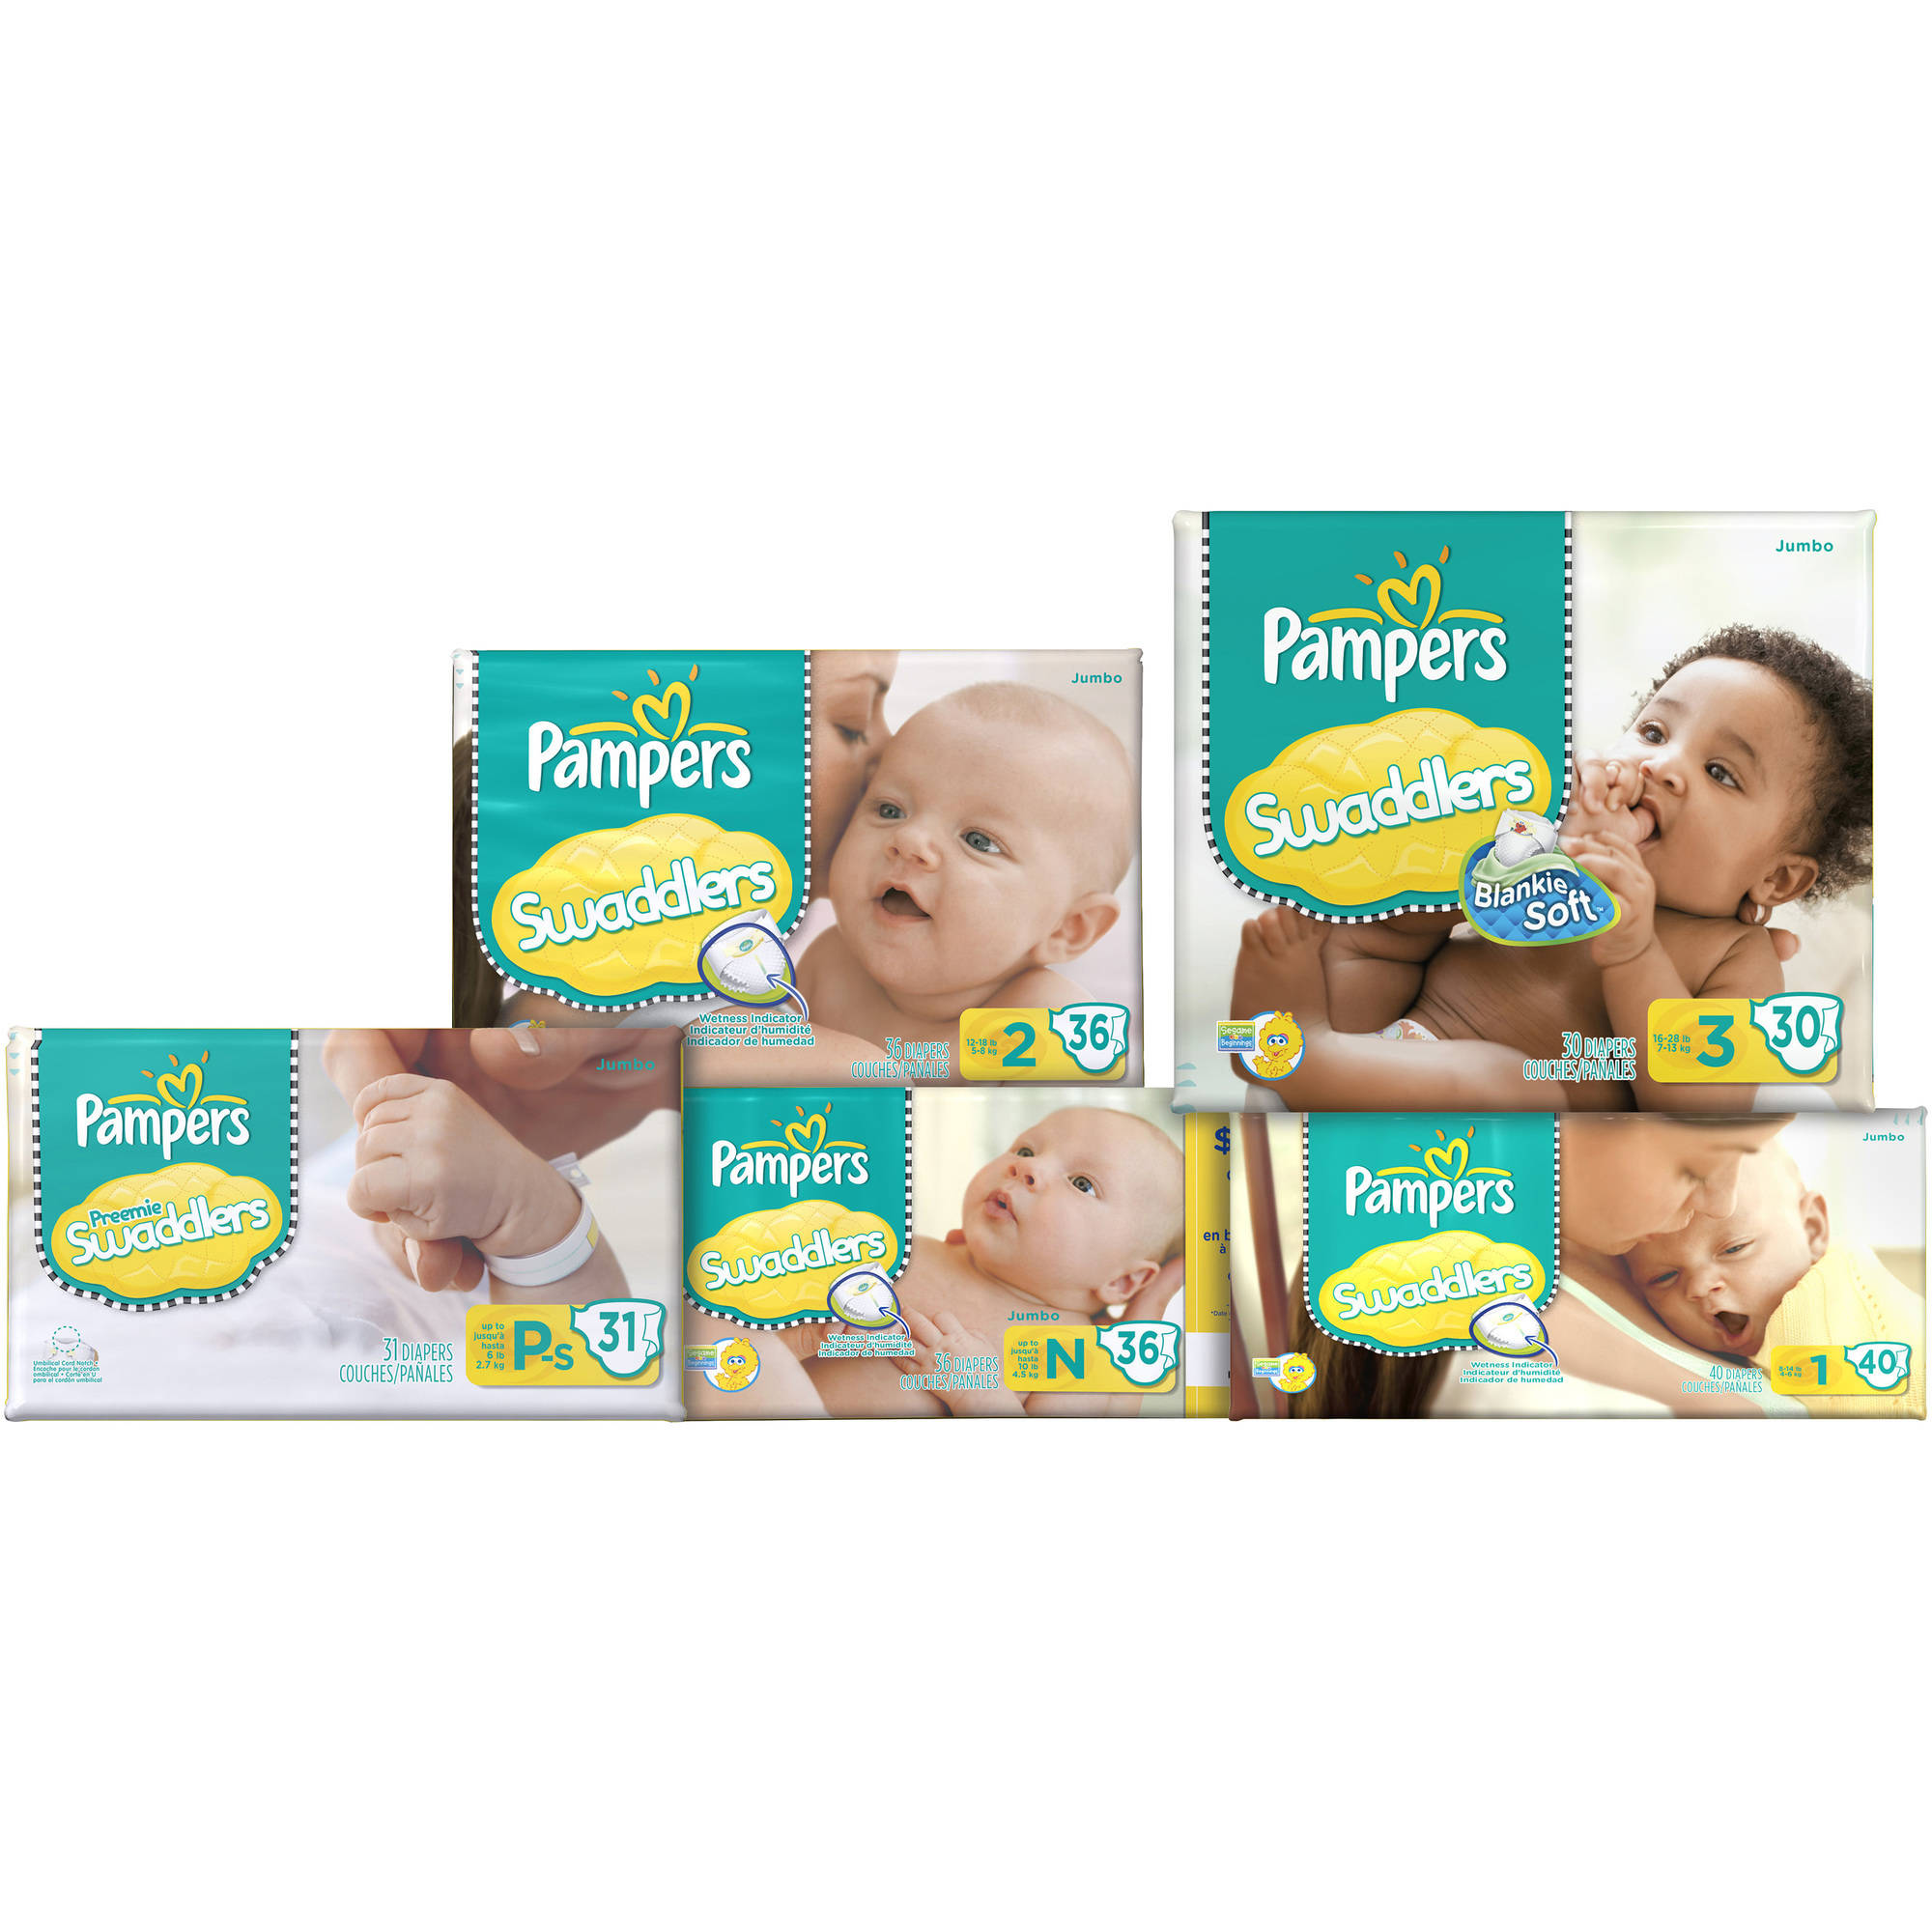 Pampers Stages Preemie Swaddlers New Baby Size Petite-Small Diapers - 31 CT